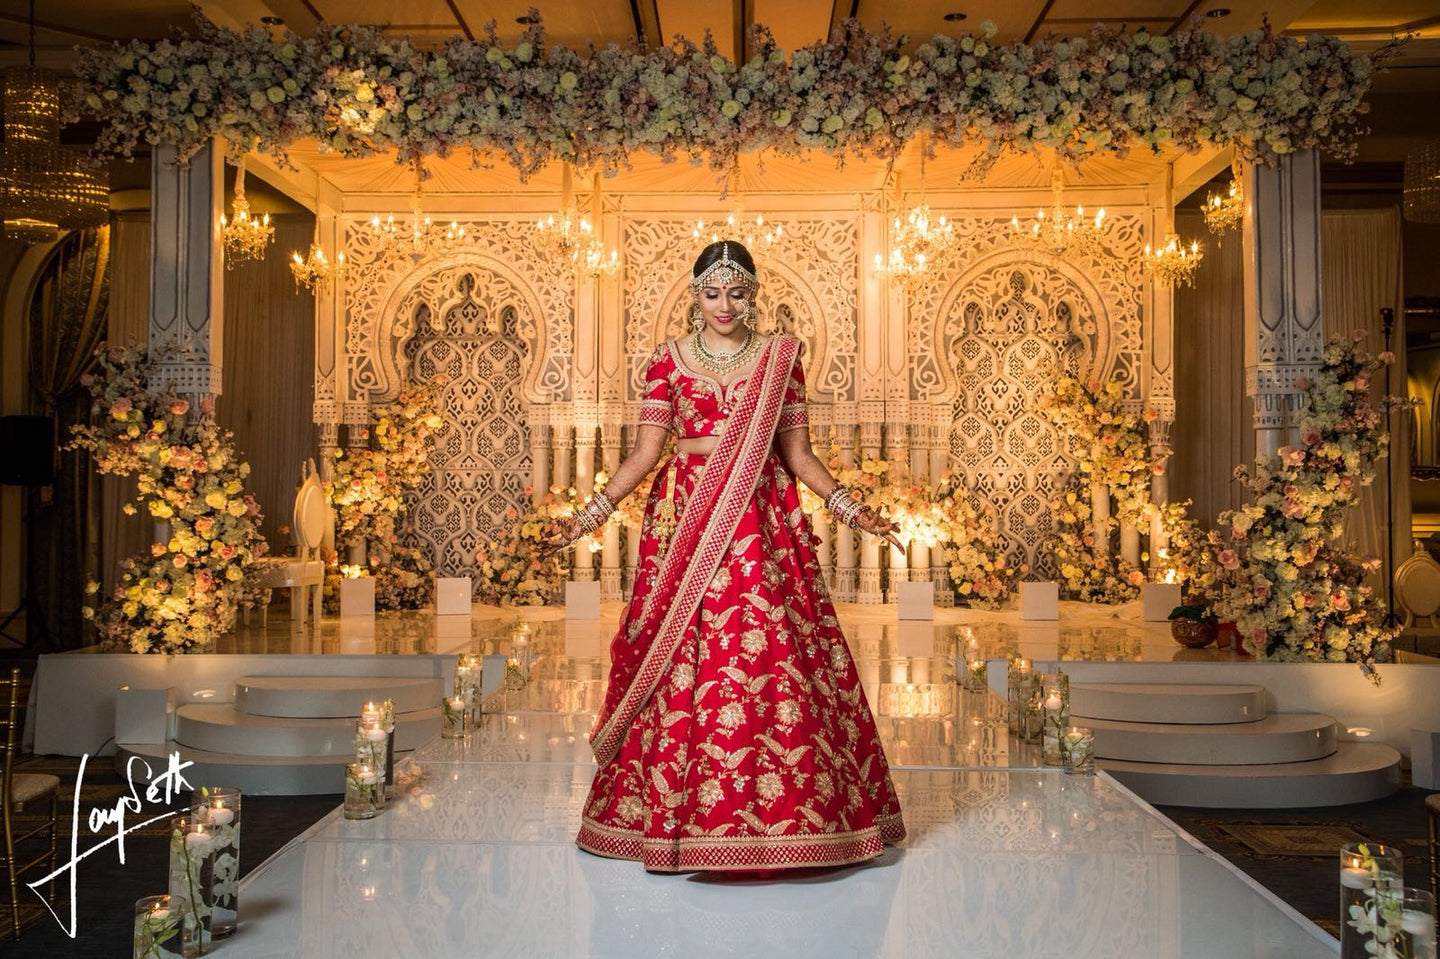 Real Bride Aanal in Sabyasachi @The Grand Trunk - The Grand Trunk